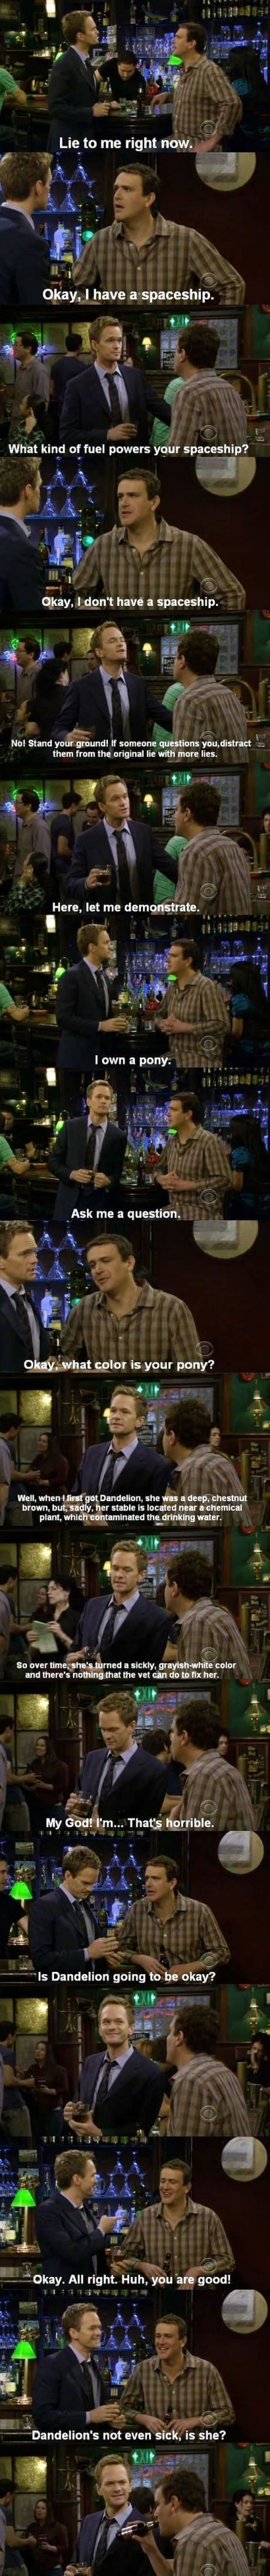 funny-picture-lying-barney-how-i-met-your-mother